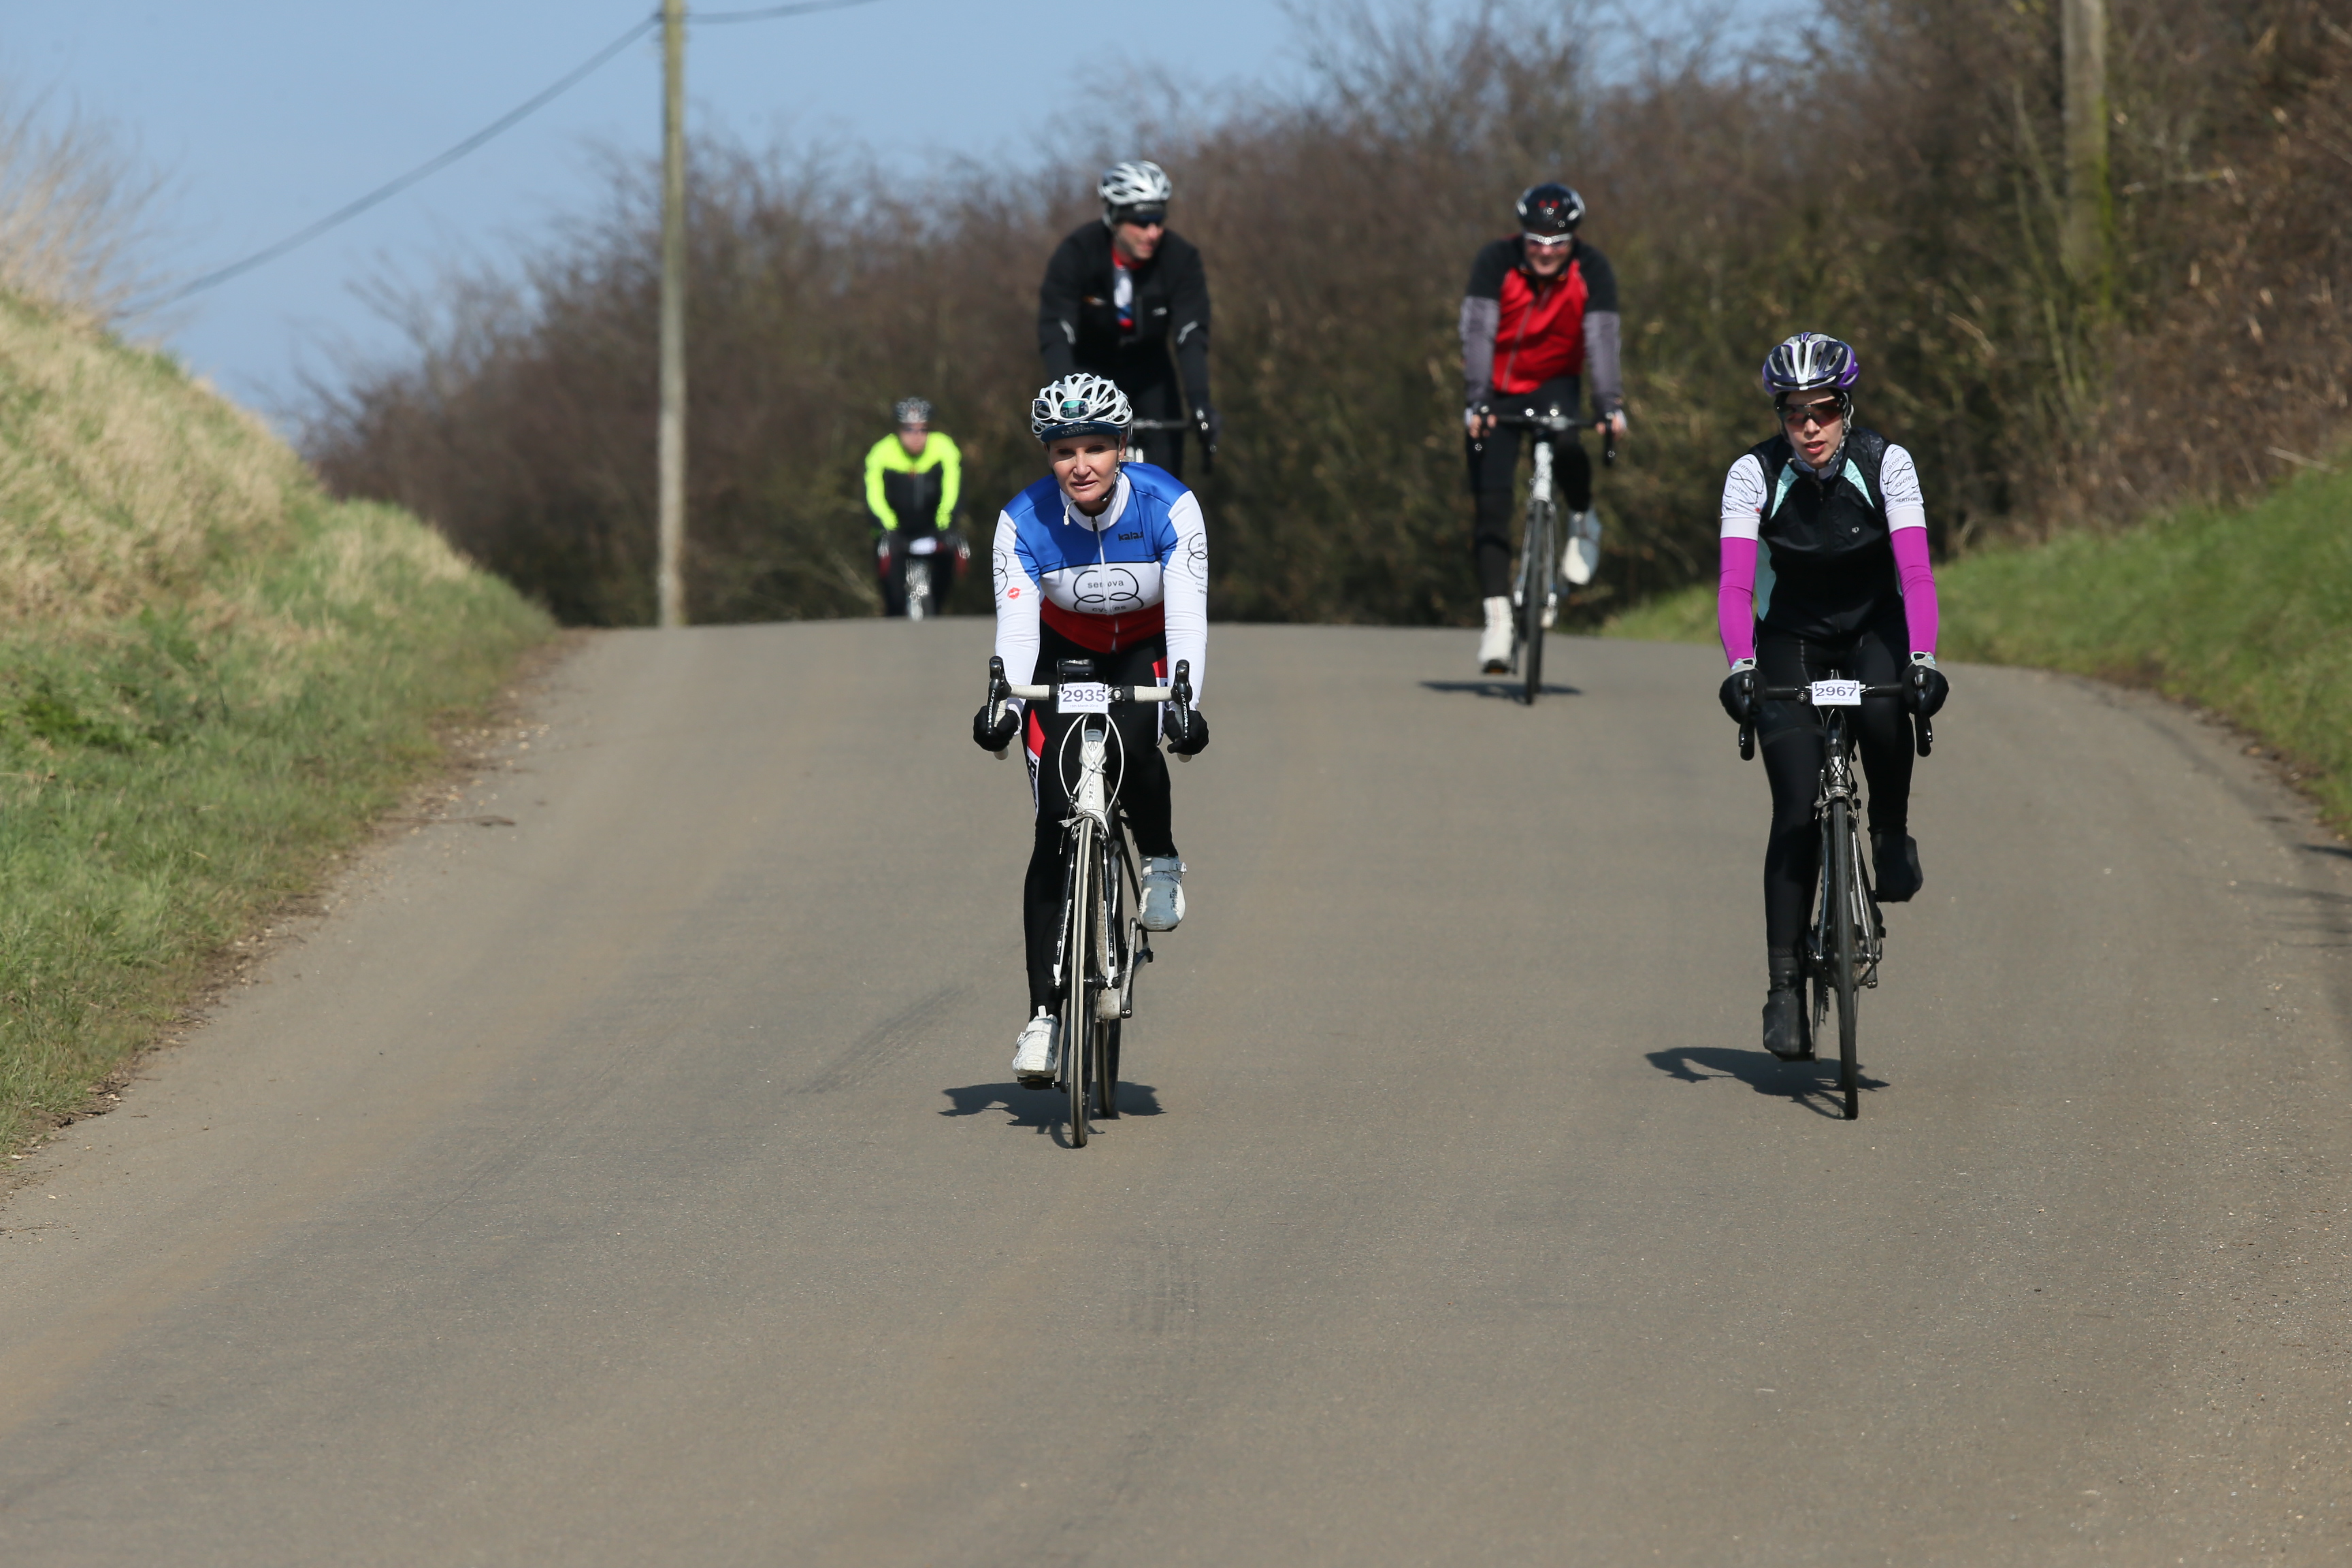 Wares Cambridge Sportive 2016 - by J at Ware, England, on 13 March 2016. Copyright 2016 owned by James Rudd